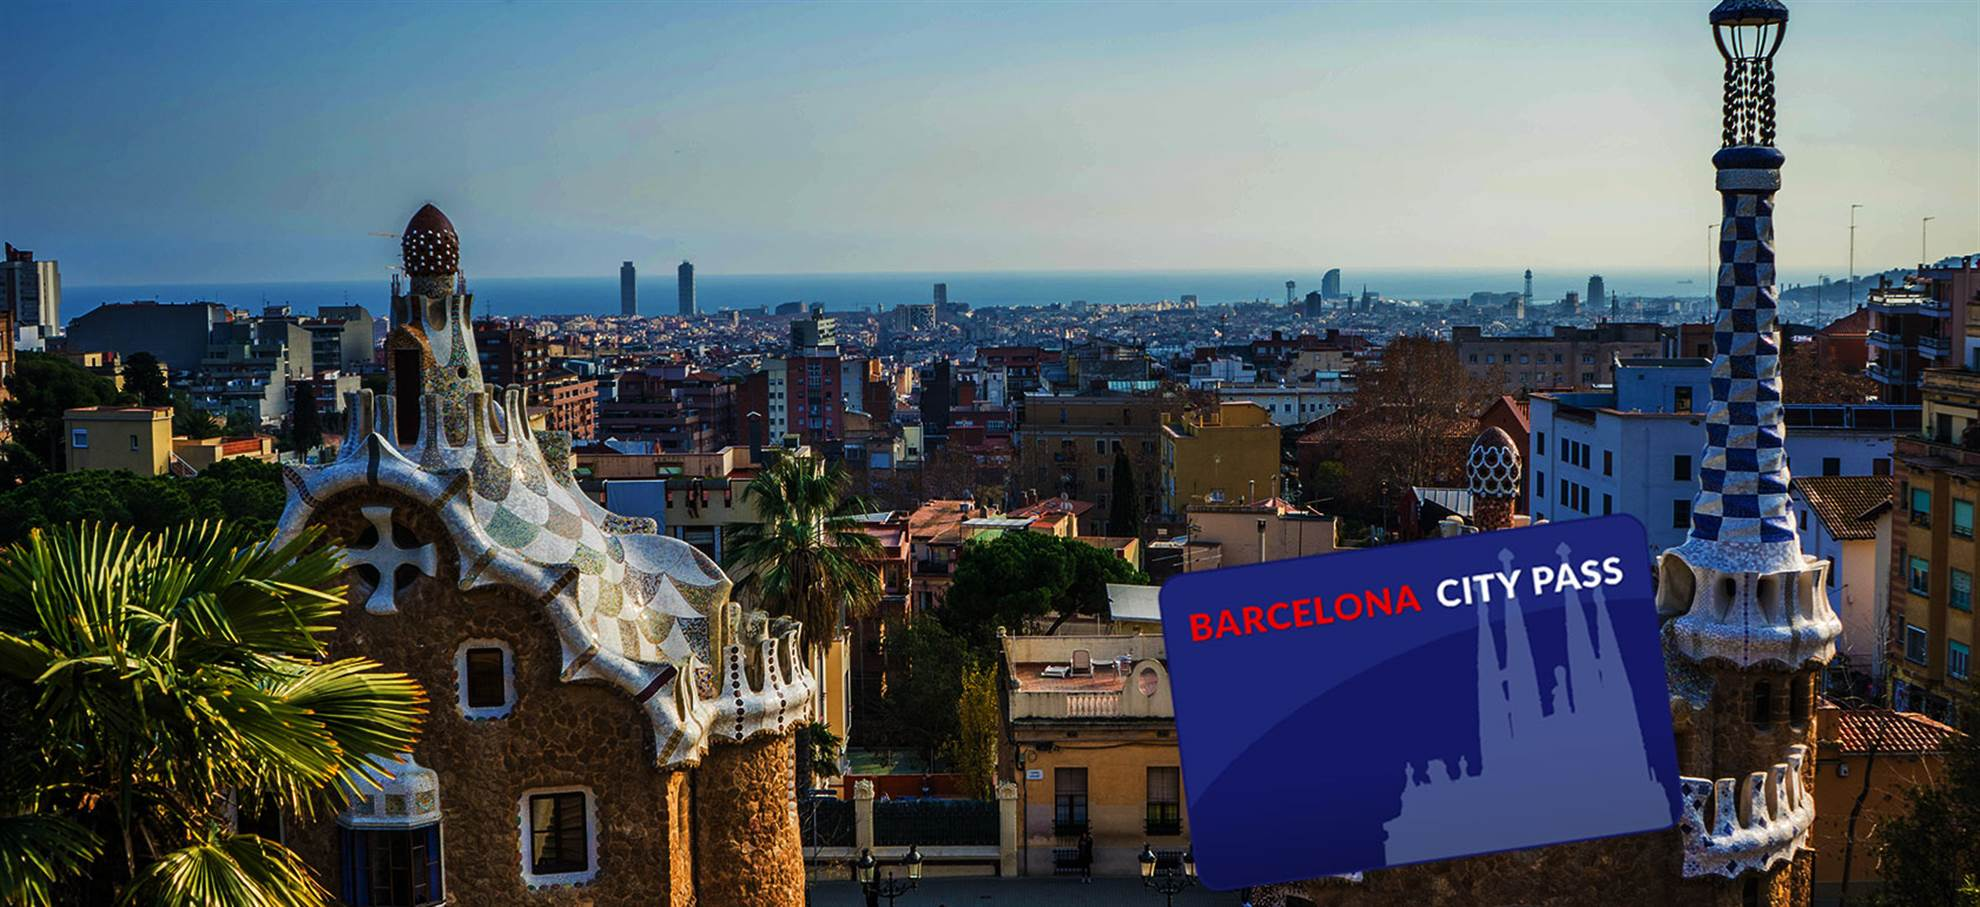 CITY PASS BARCELLONA (opzione Sagrada Familia con tour guidato in italiano)